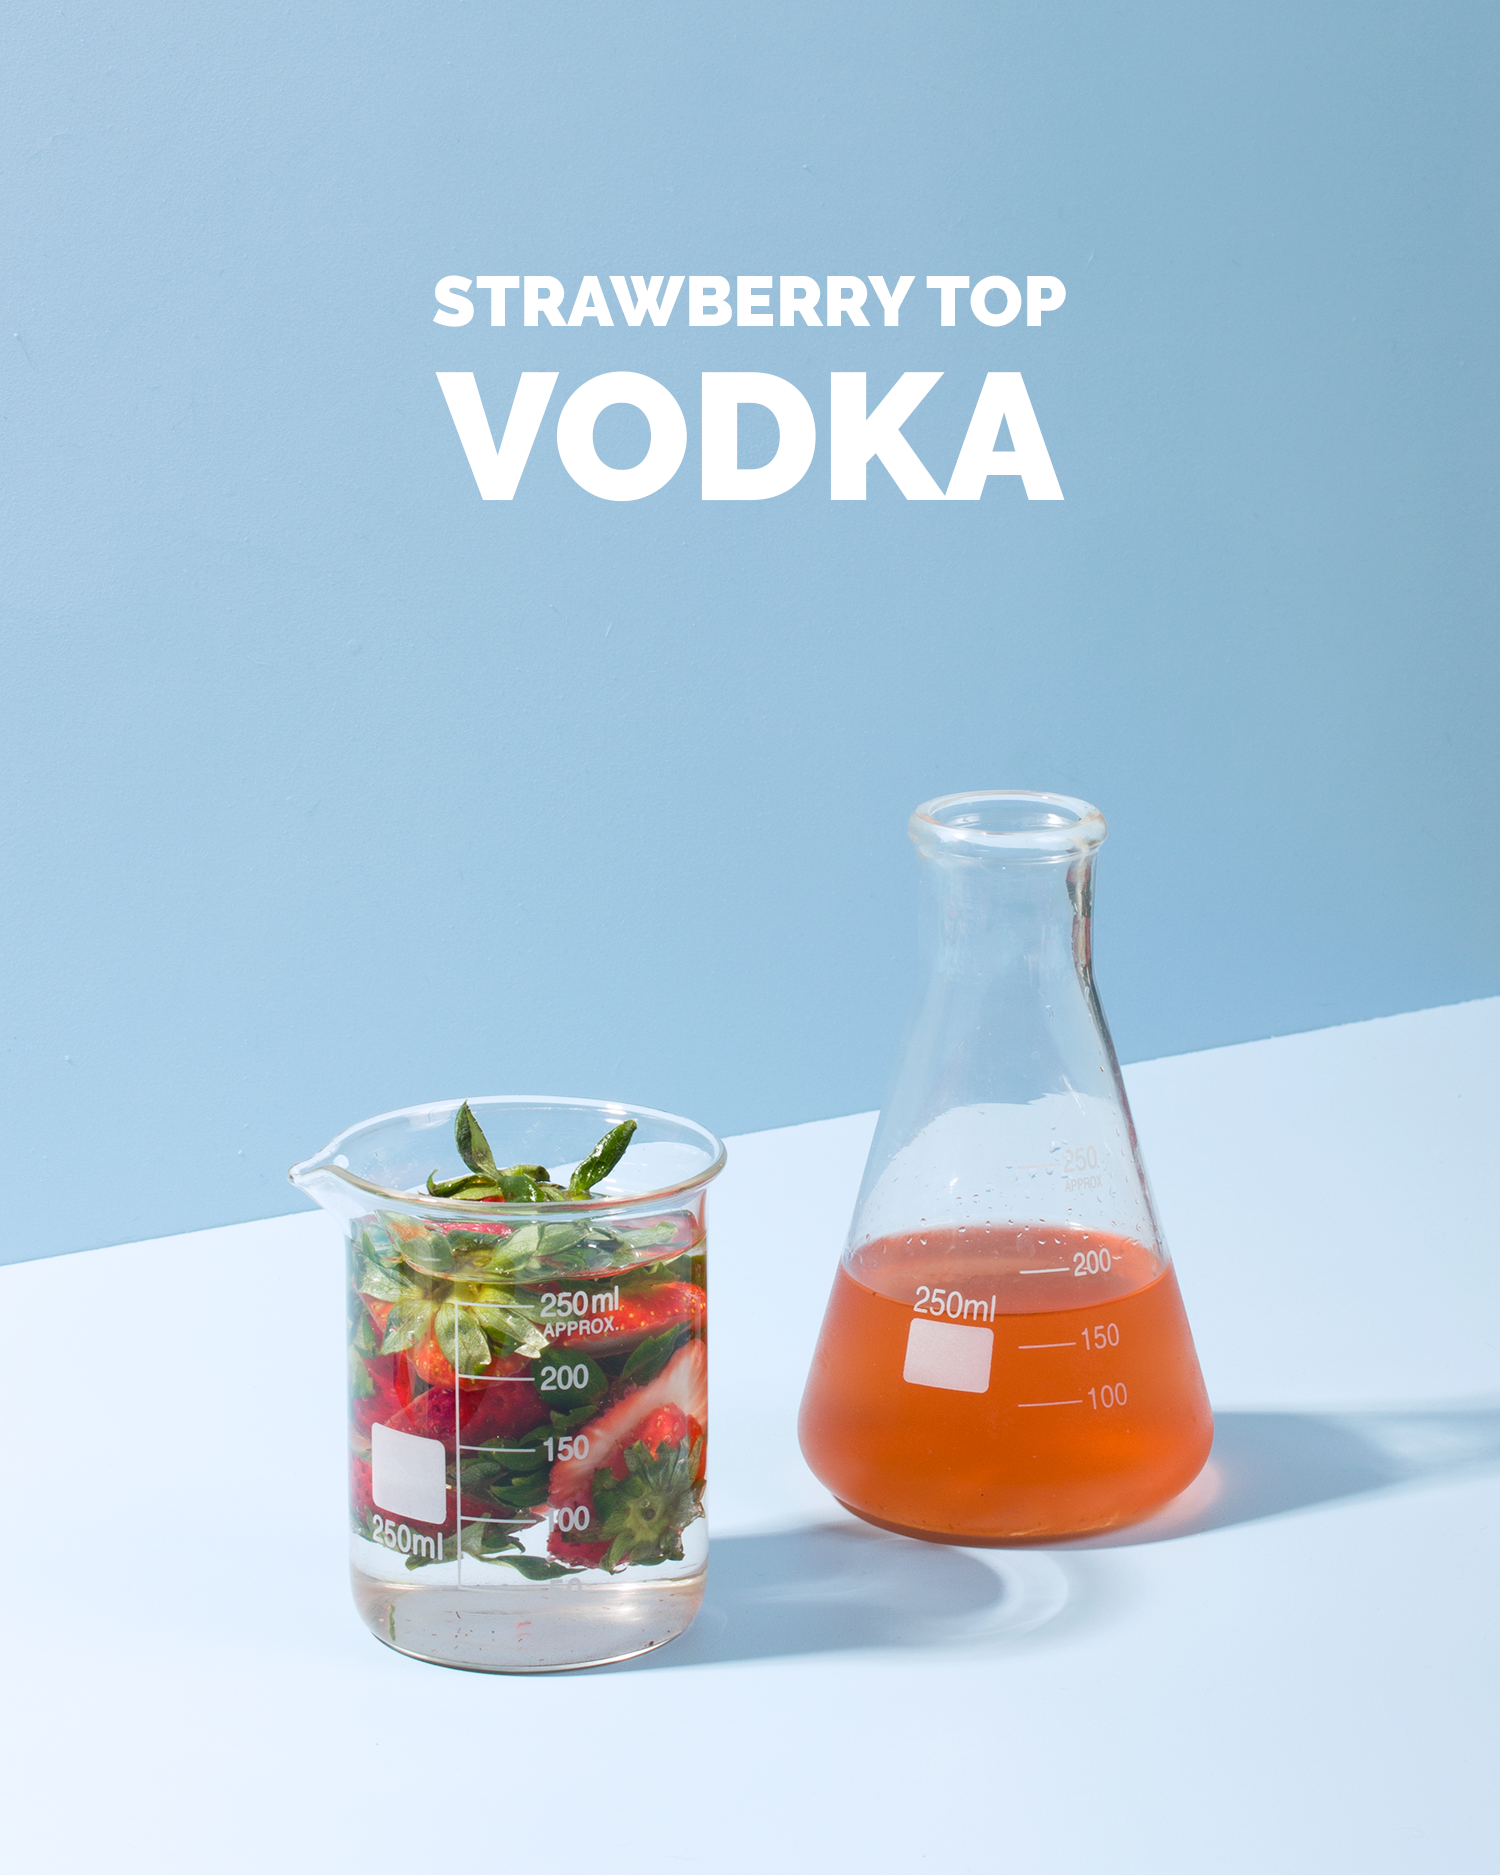 Strawberry Top Vodka / Wit & Vinegar